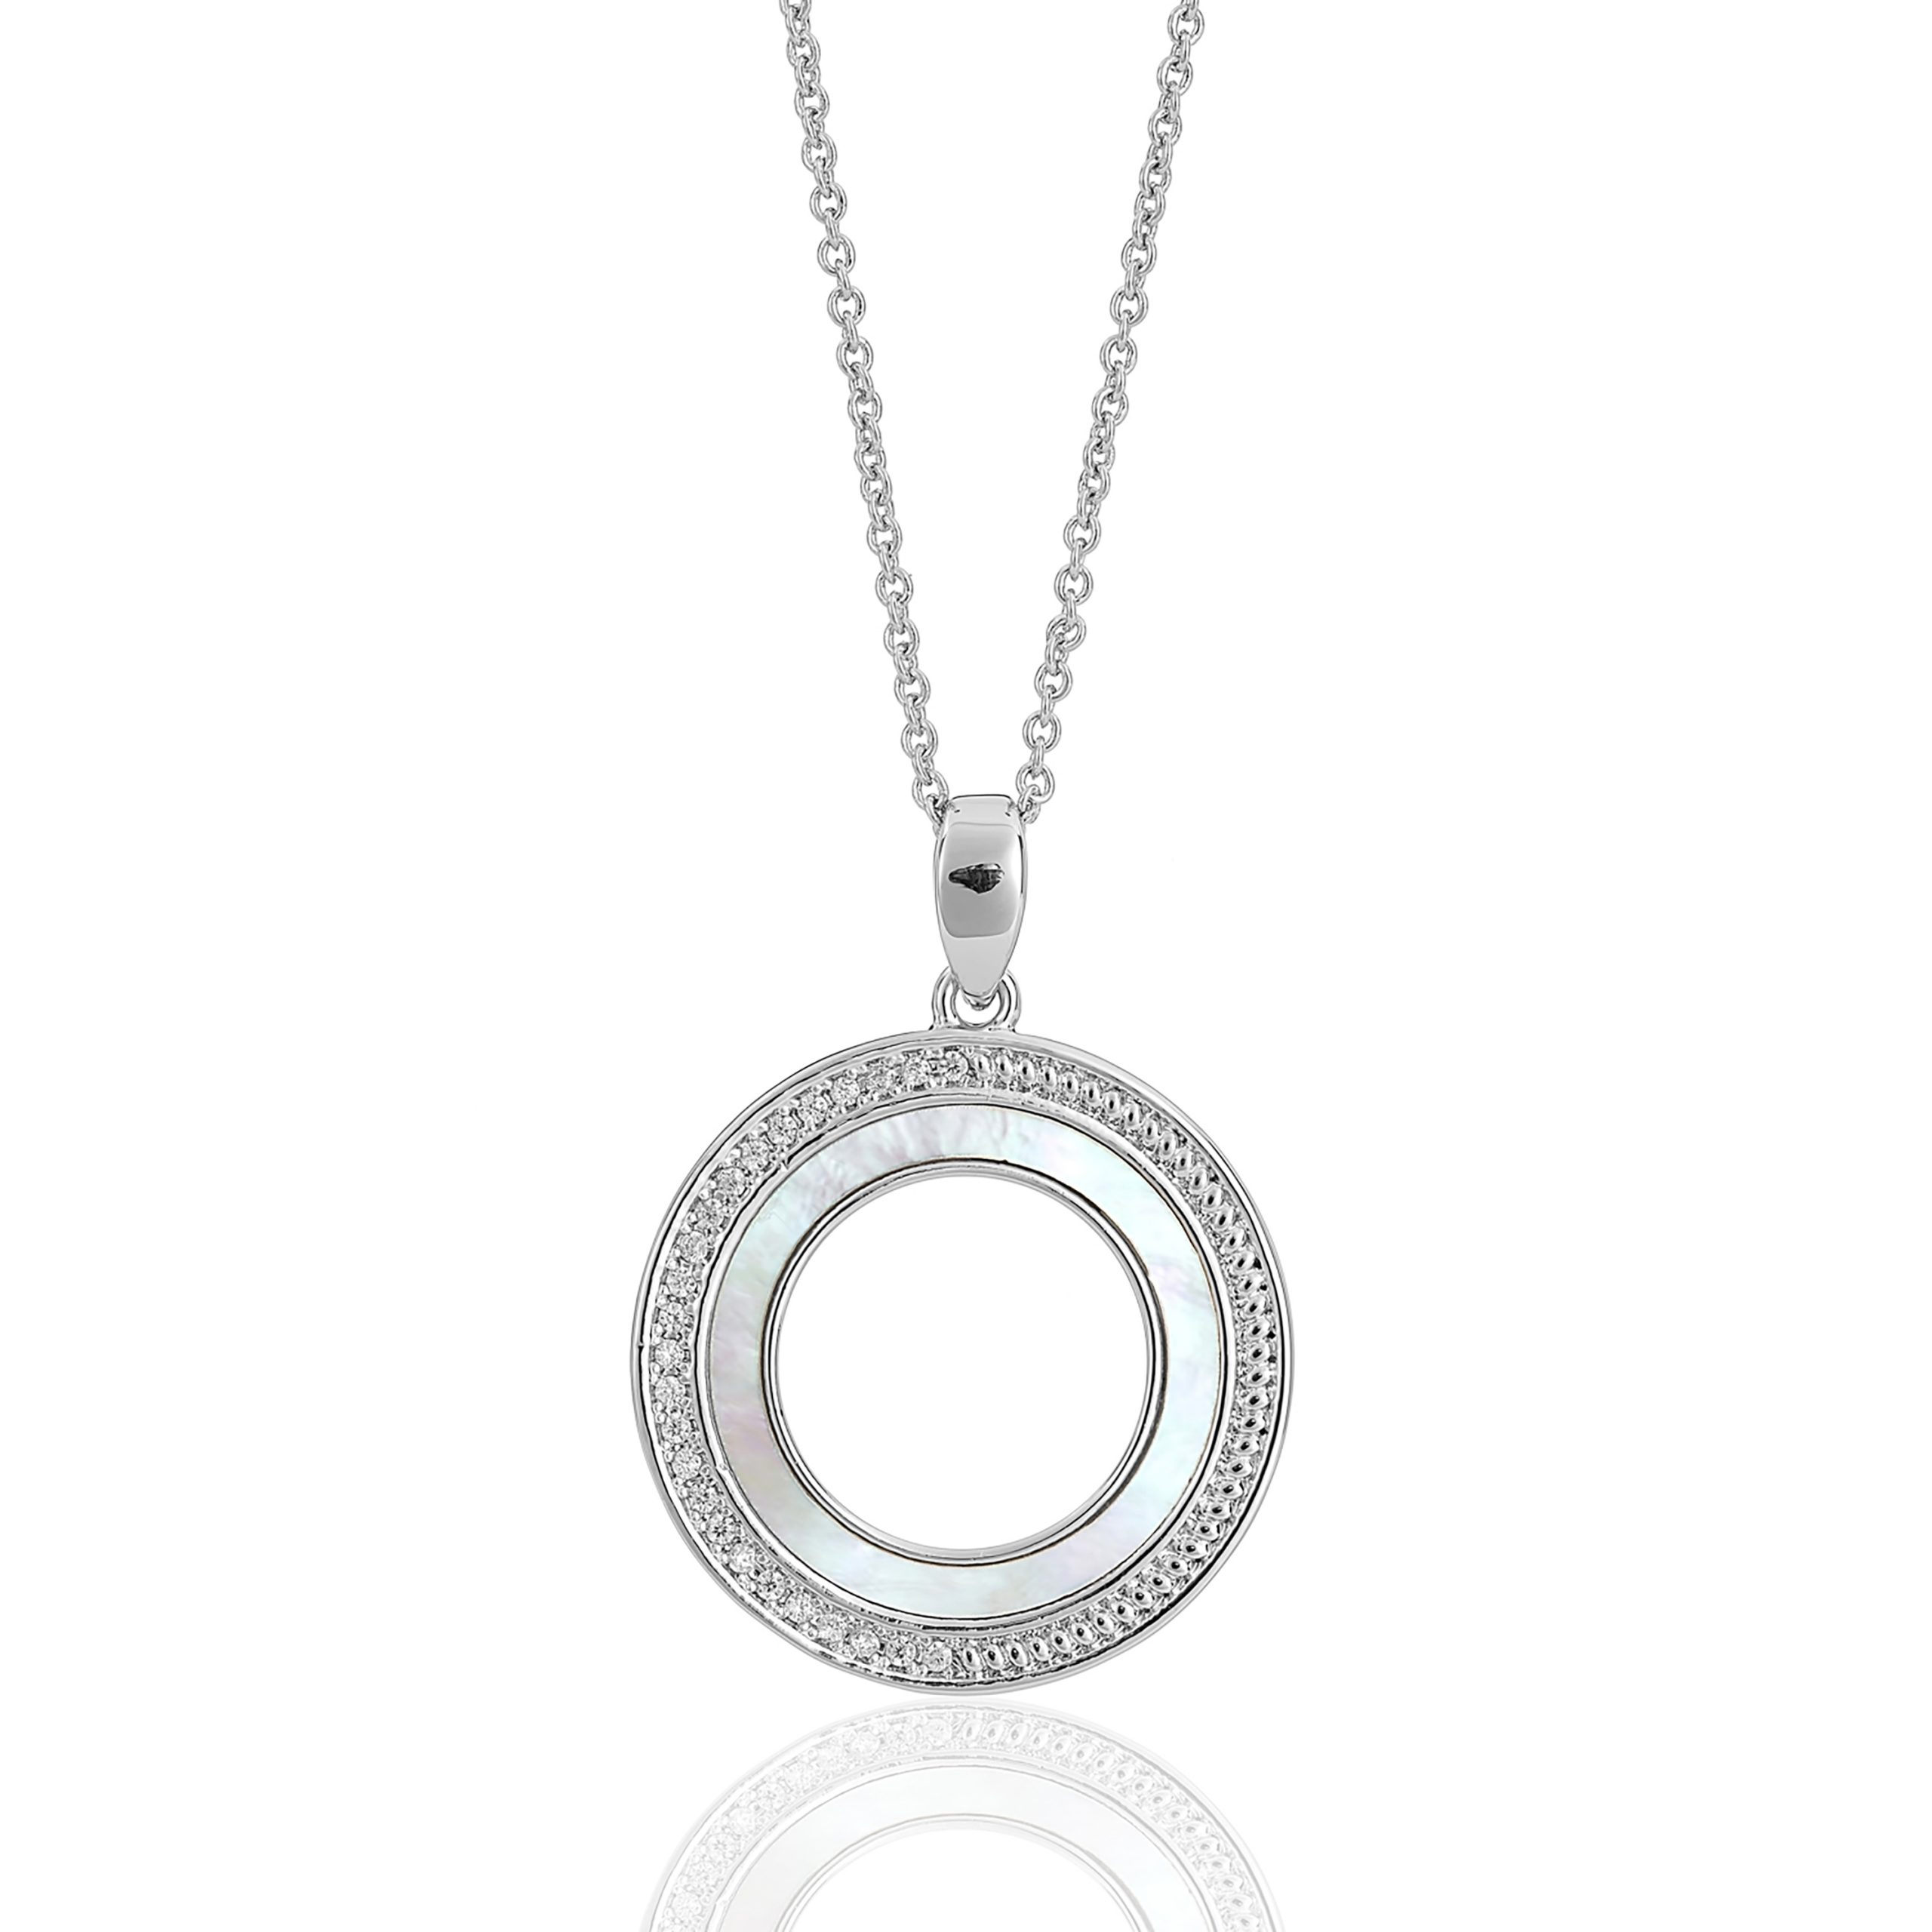 Silver Cameo Revolve Necklace